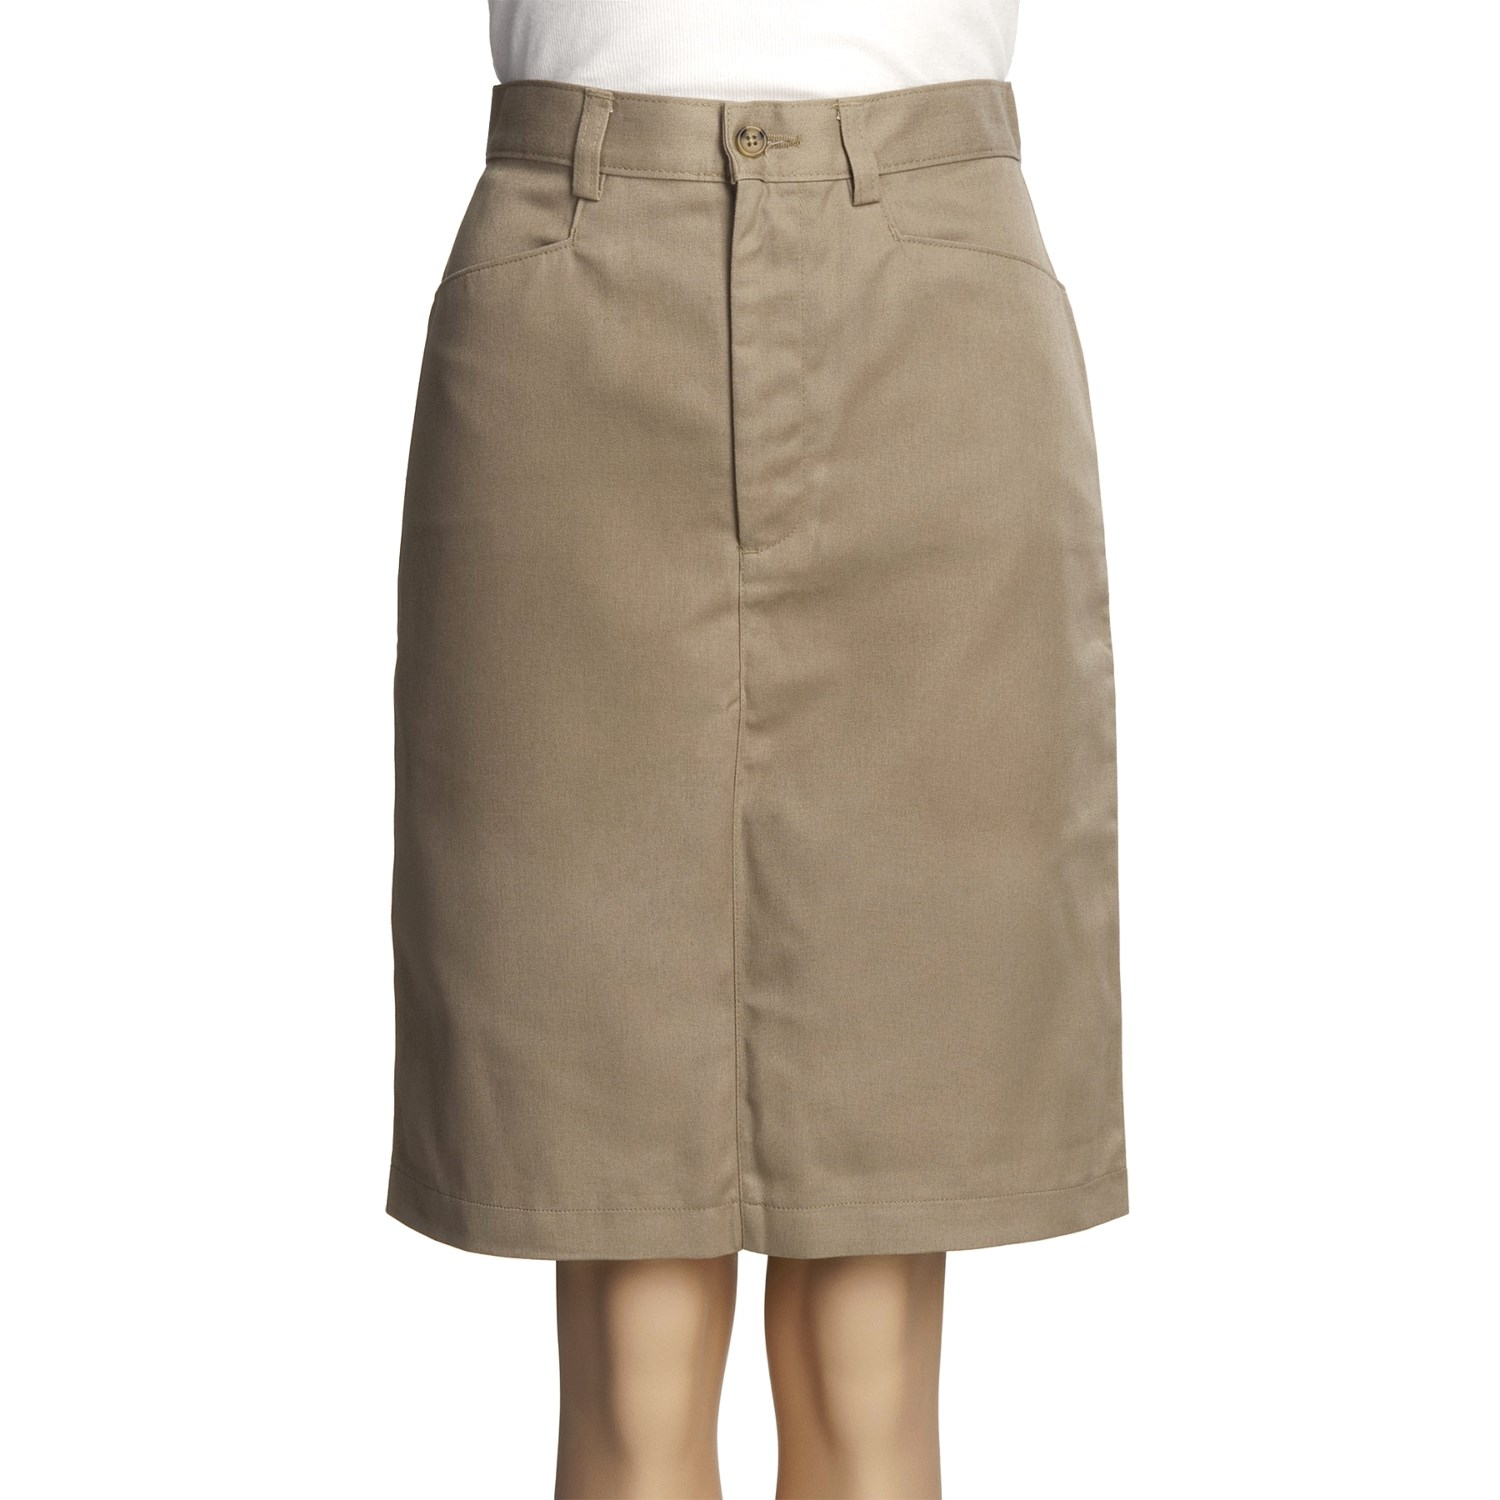 Shop cute skirts for women in Style J. Find women's knee length pencil skirts, A-line denim skirts, pleated denim skirts, gorgeous flared denim skirts and more Filter by Color All Blue Beige Navy Vintage-Blue White Khaki.